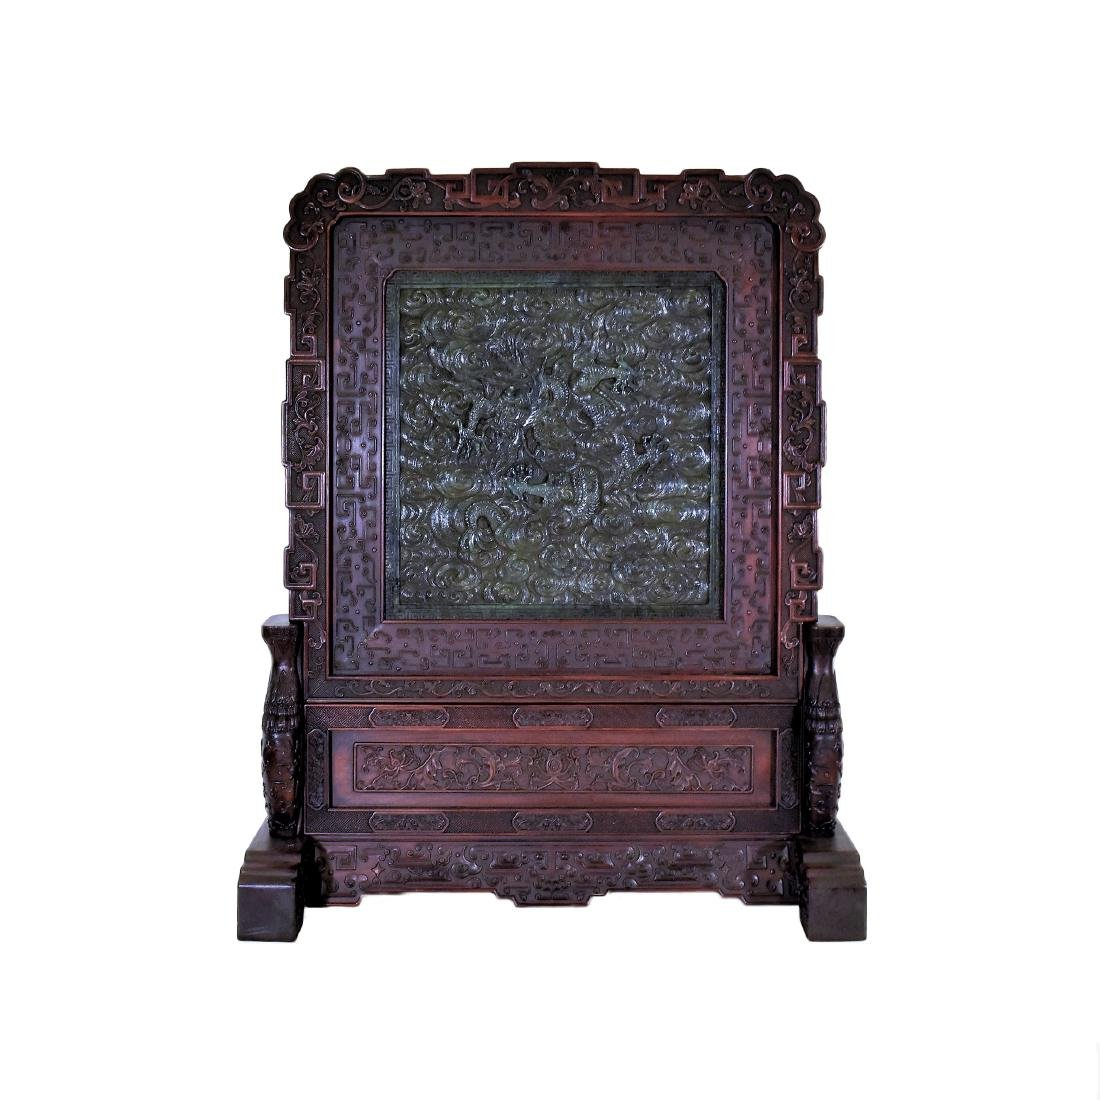 LARGE CHINESE GREEN JADE DRAGON TABLE SCREEN